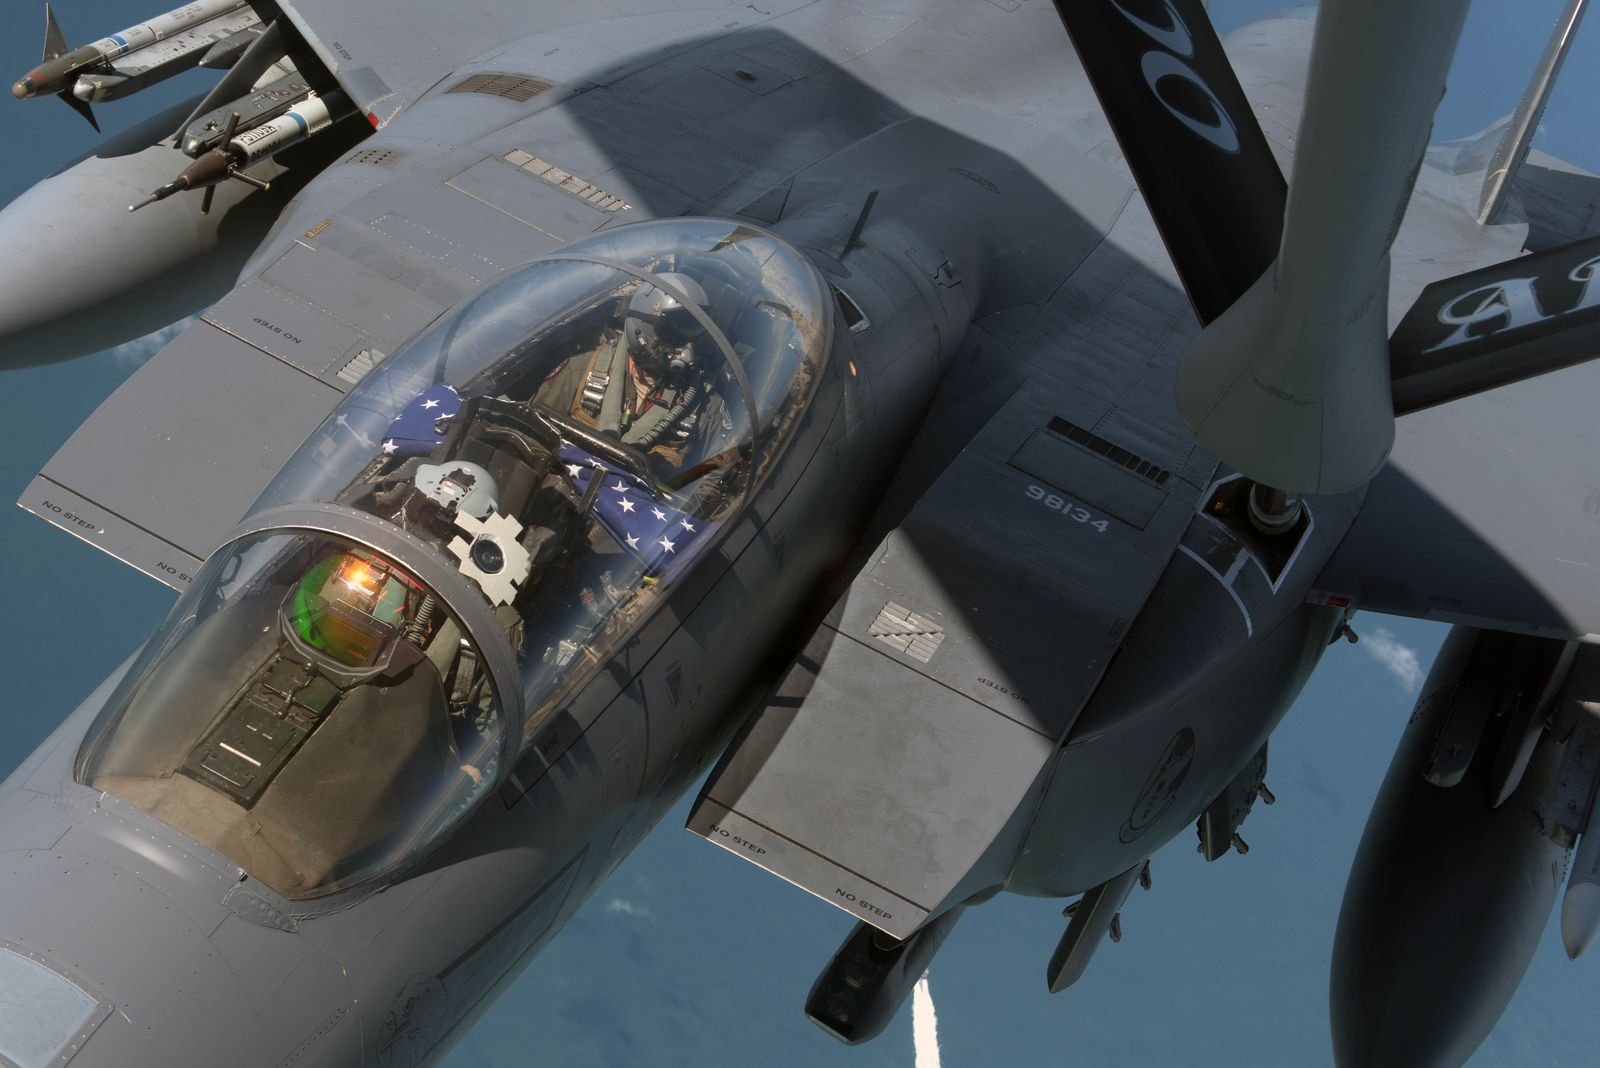 This Is the Battle That Turned the F-15 Strike Eagle Into a Legend